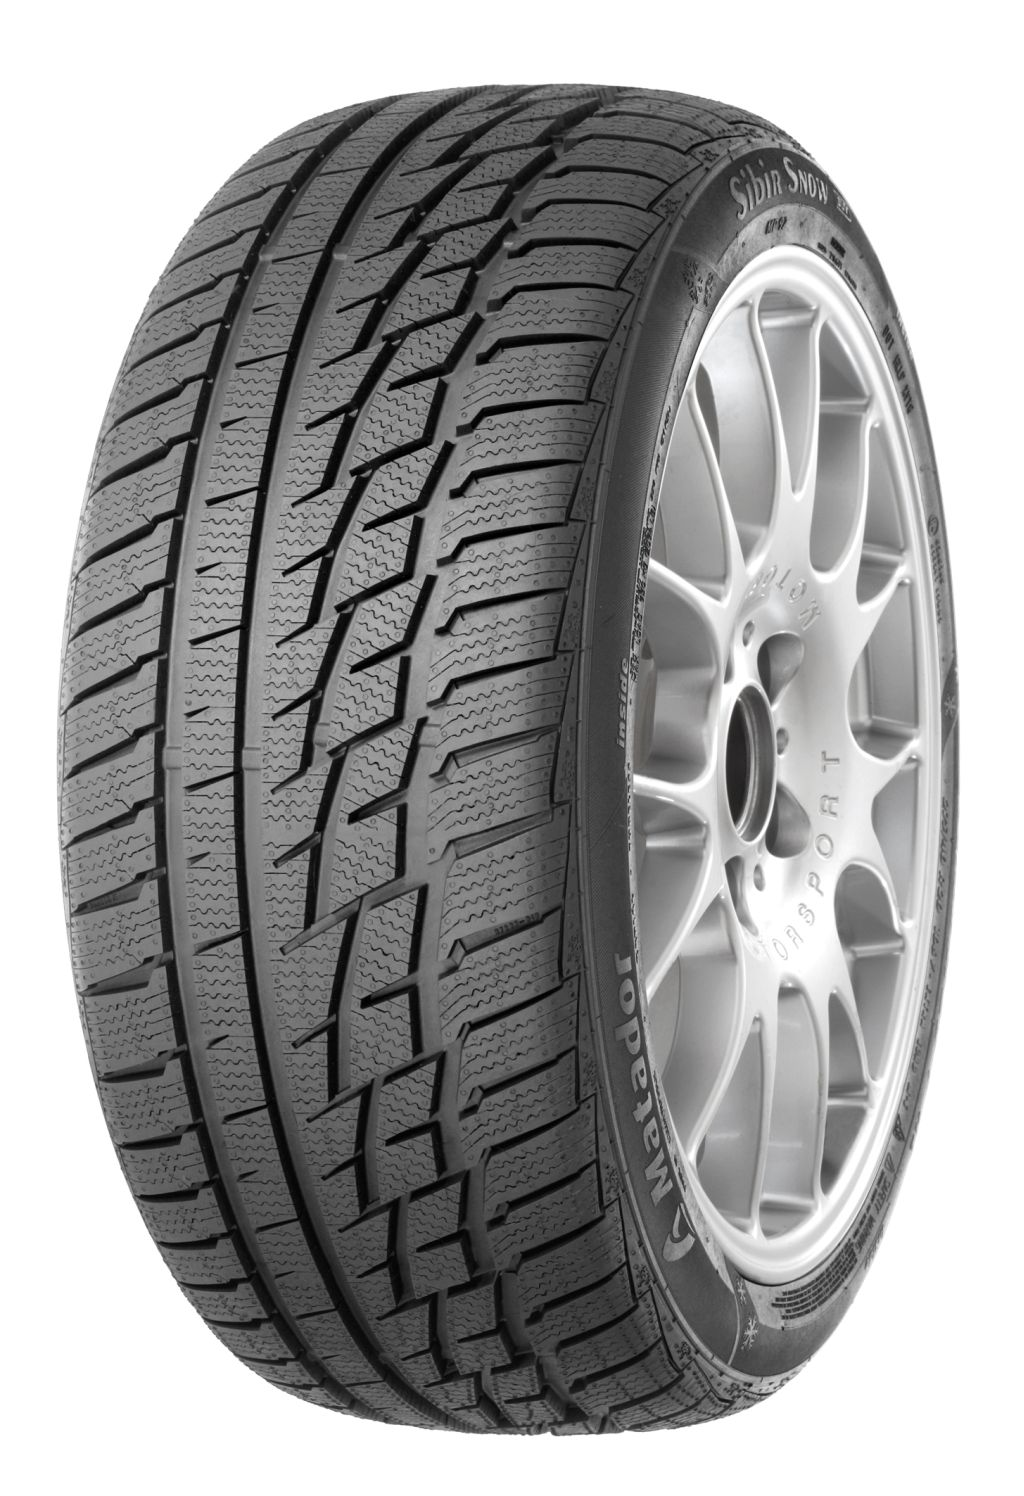 225/65R17 102T, Matador, MP92 Sibir Snow